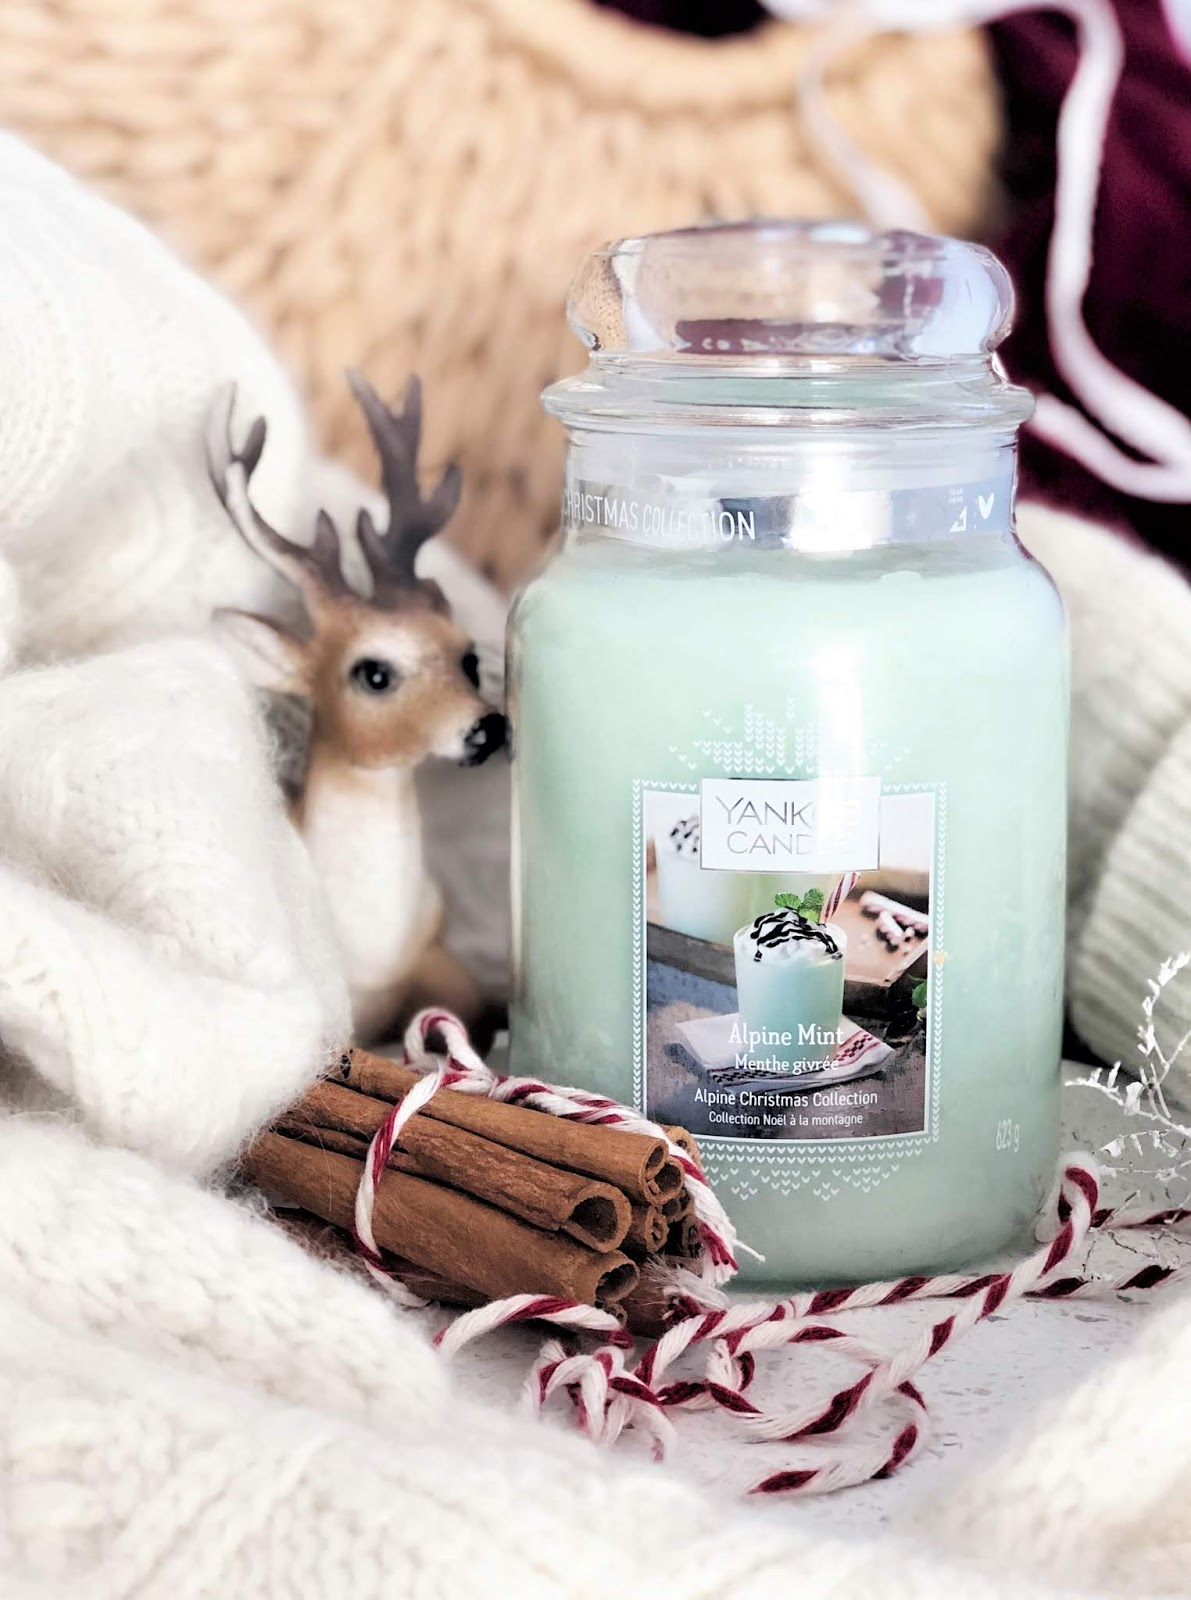 Alpine-Christmas-Yankee-Candle-Alpine-Mint